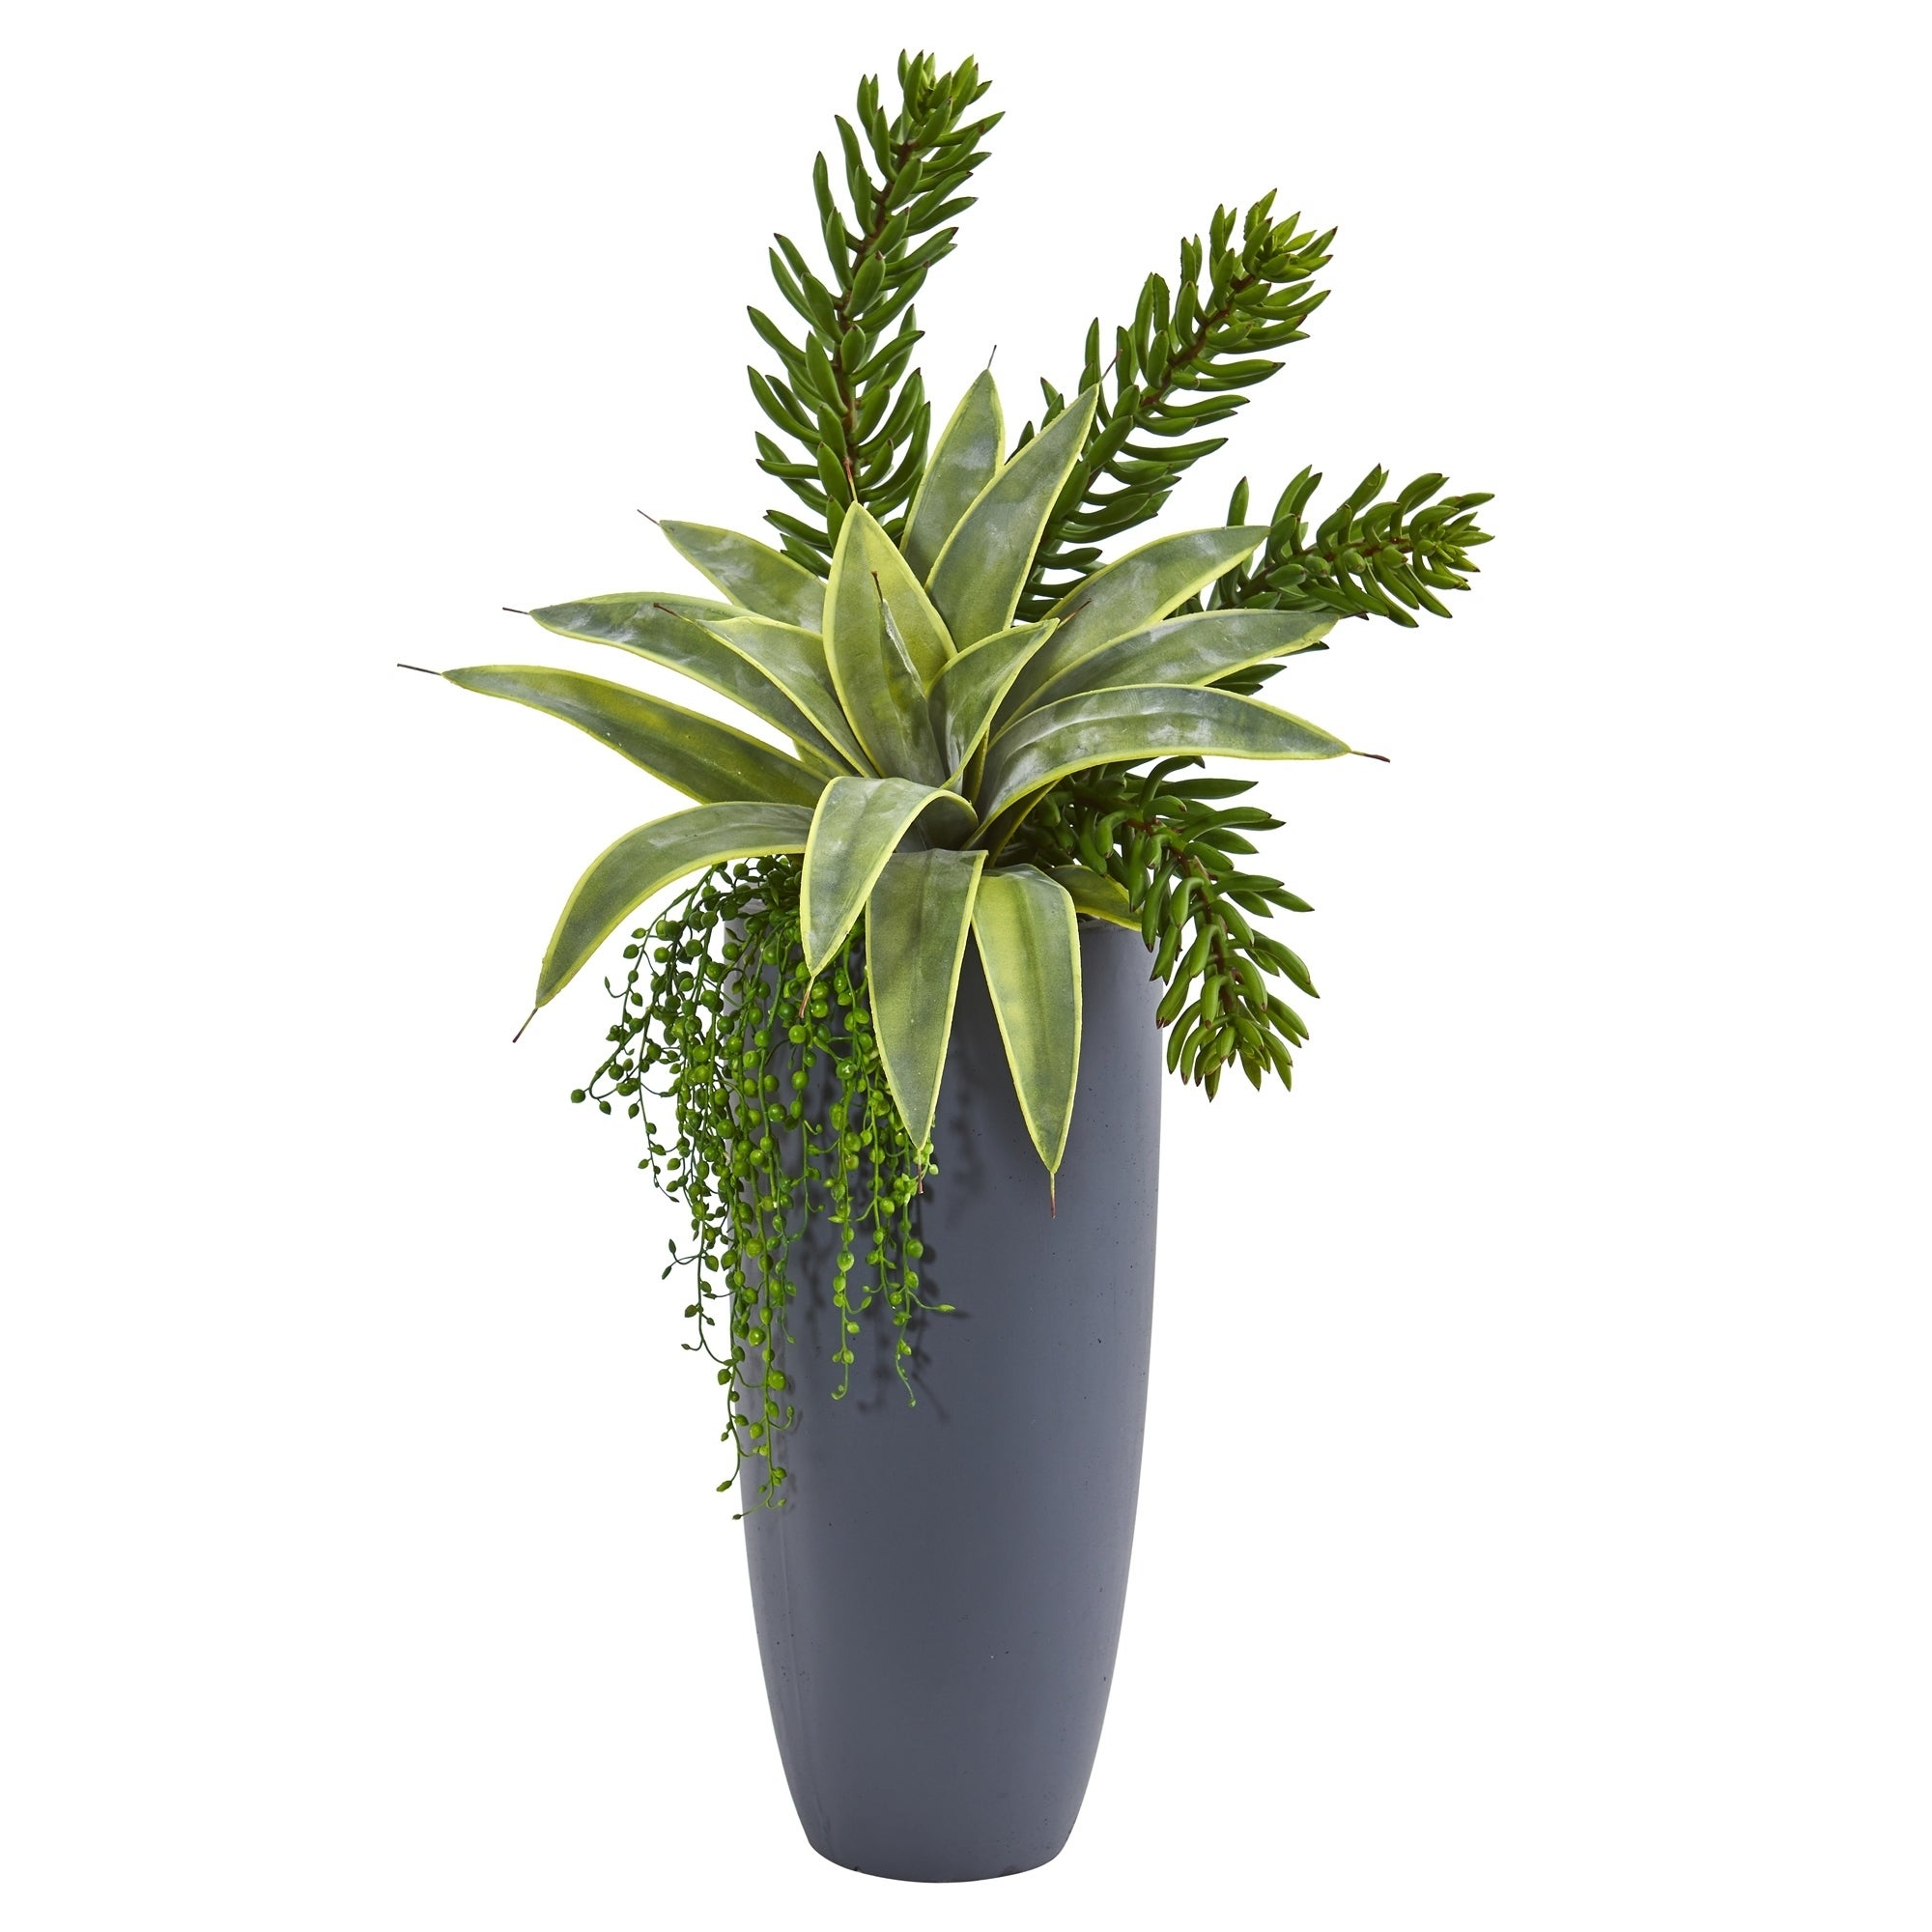 33 Sanseveria and Succulent Artificial Plant in Gray Planter